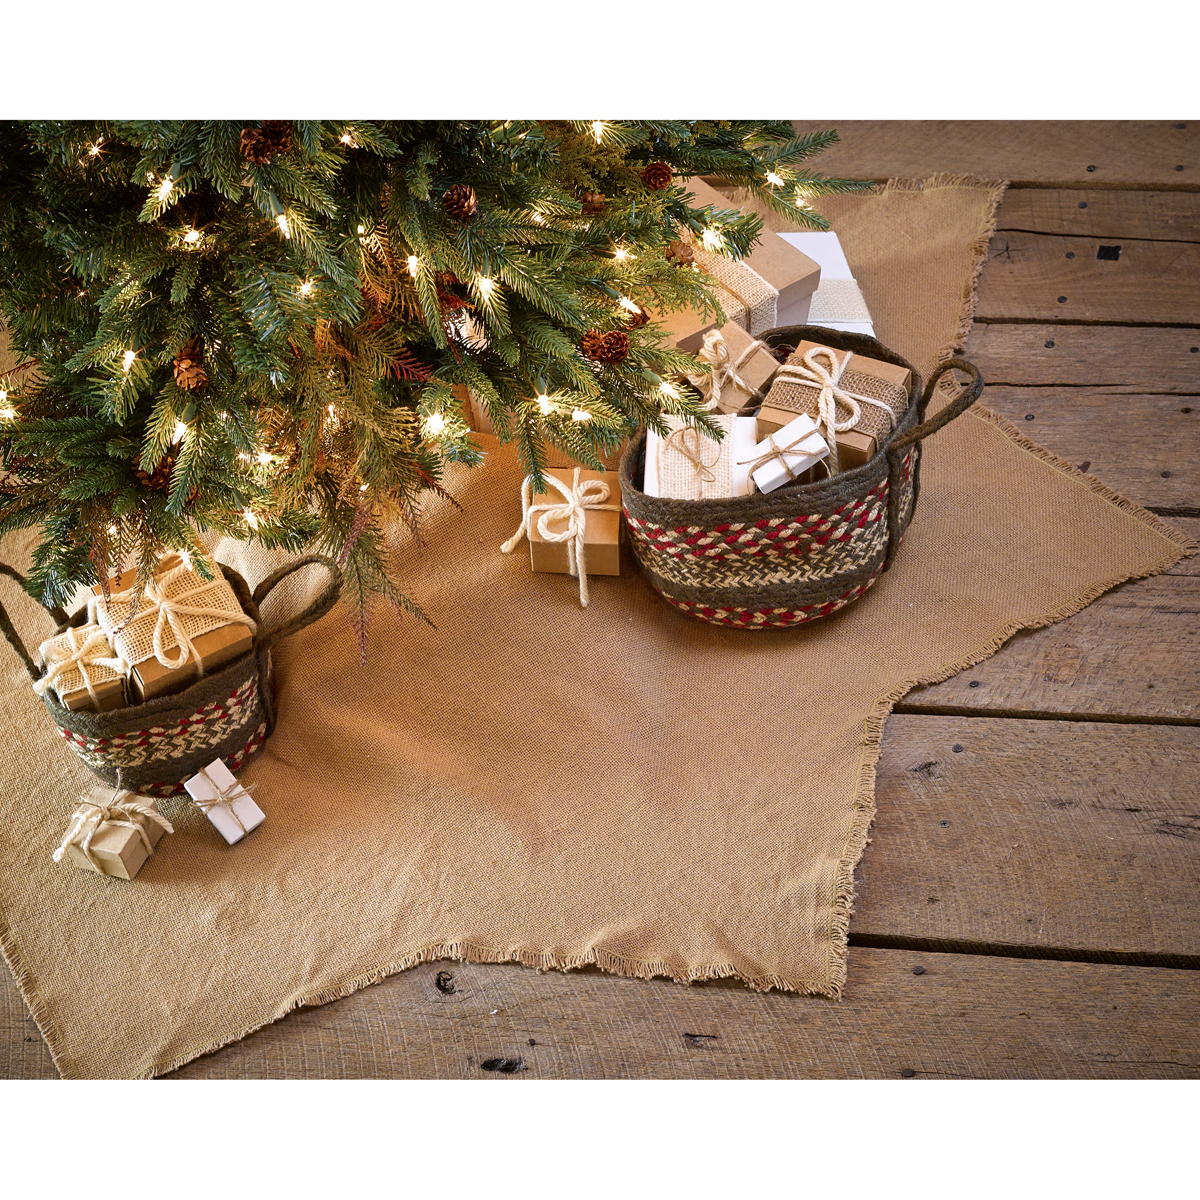 Burlap Ruffle 48 Christmas Tree Skirt Primitive Rustic Country Natural Holiday For Sale Online Ebay